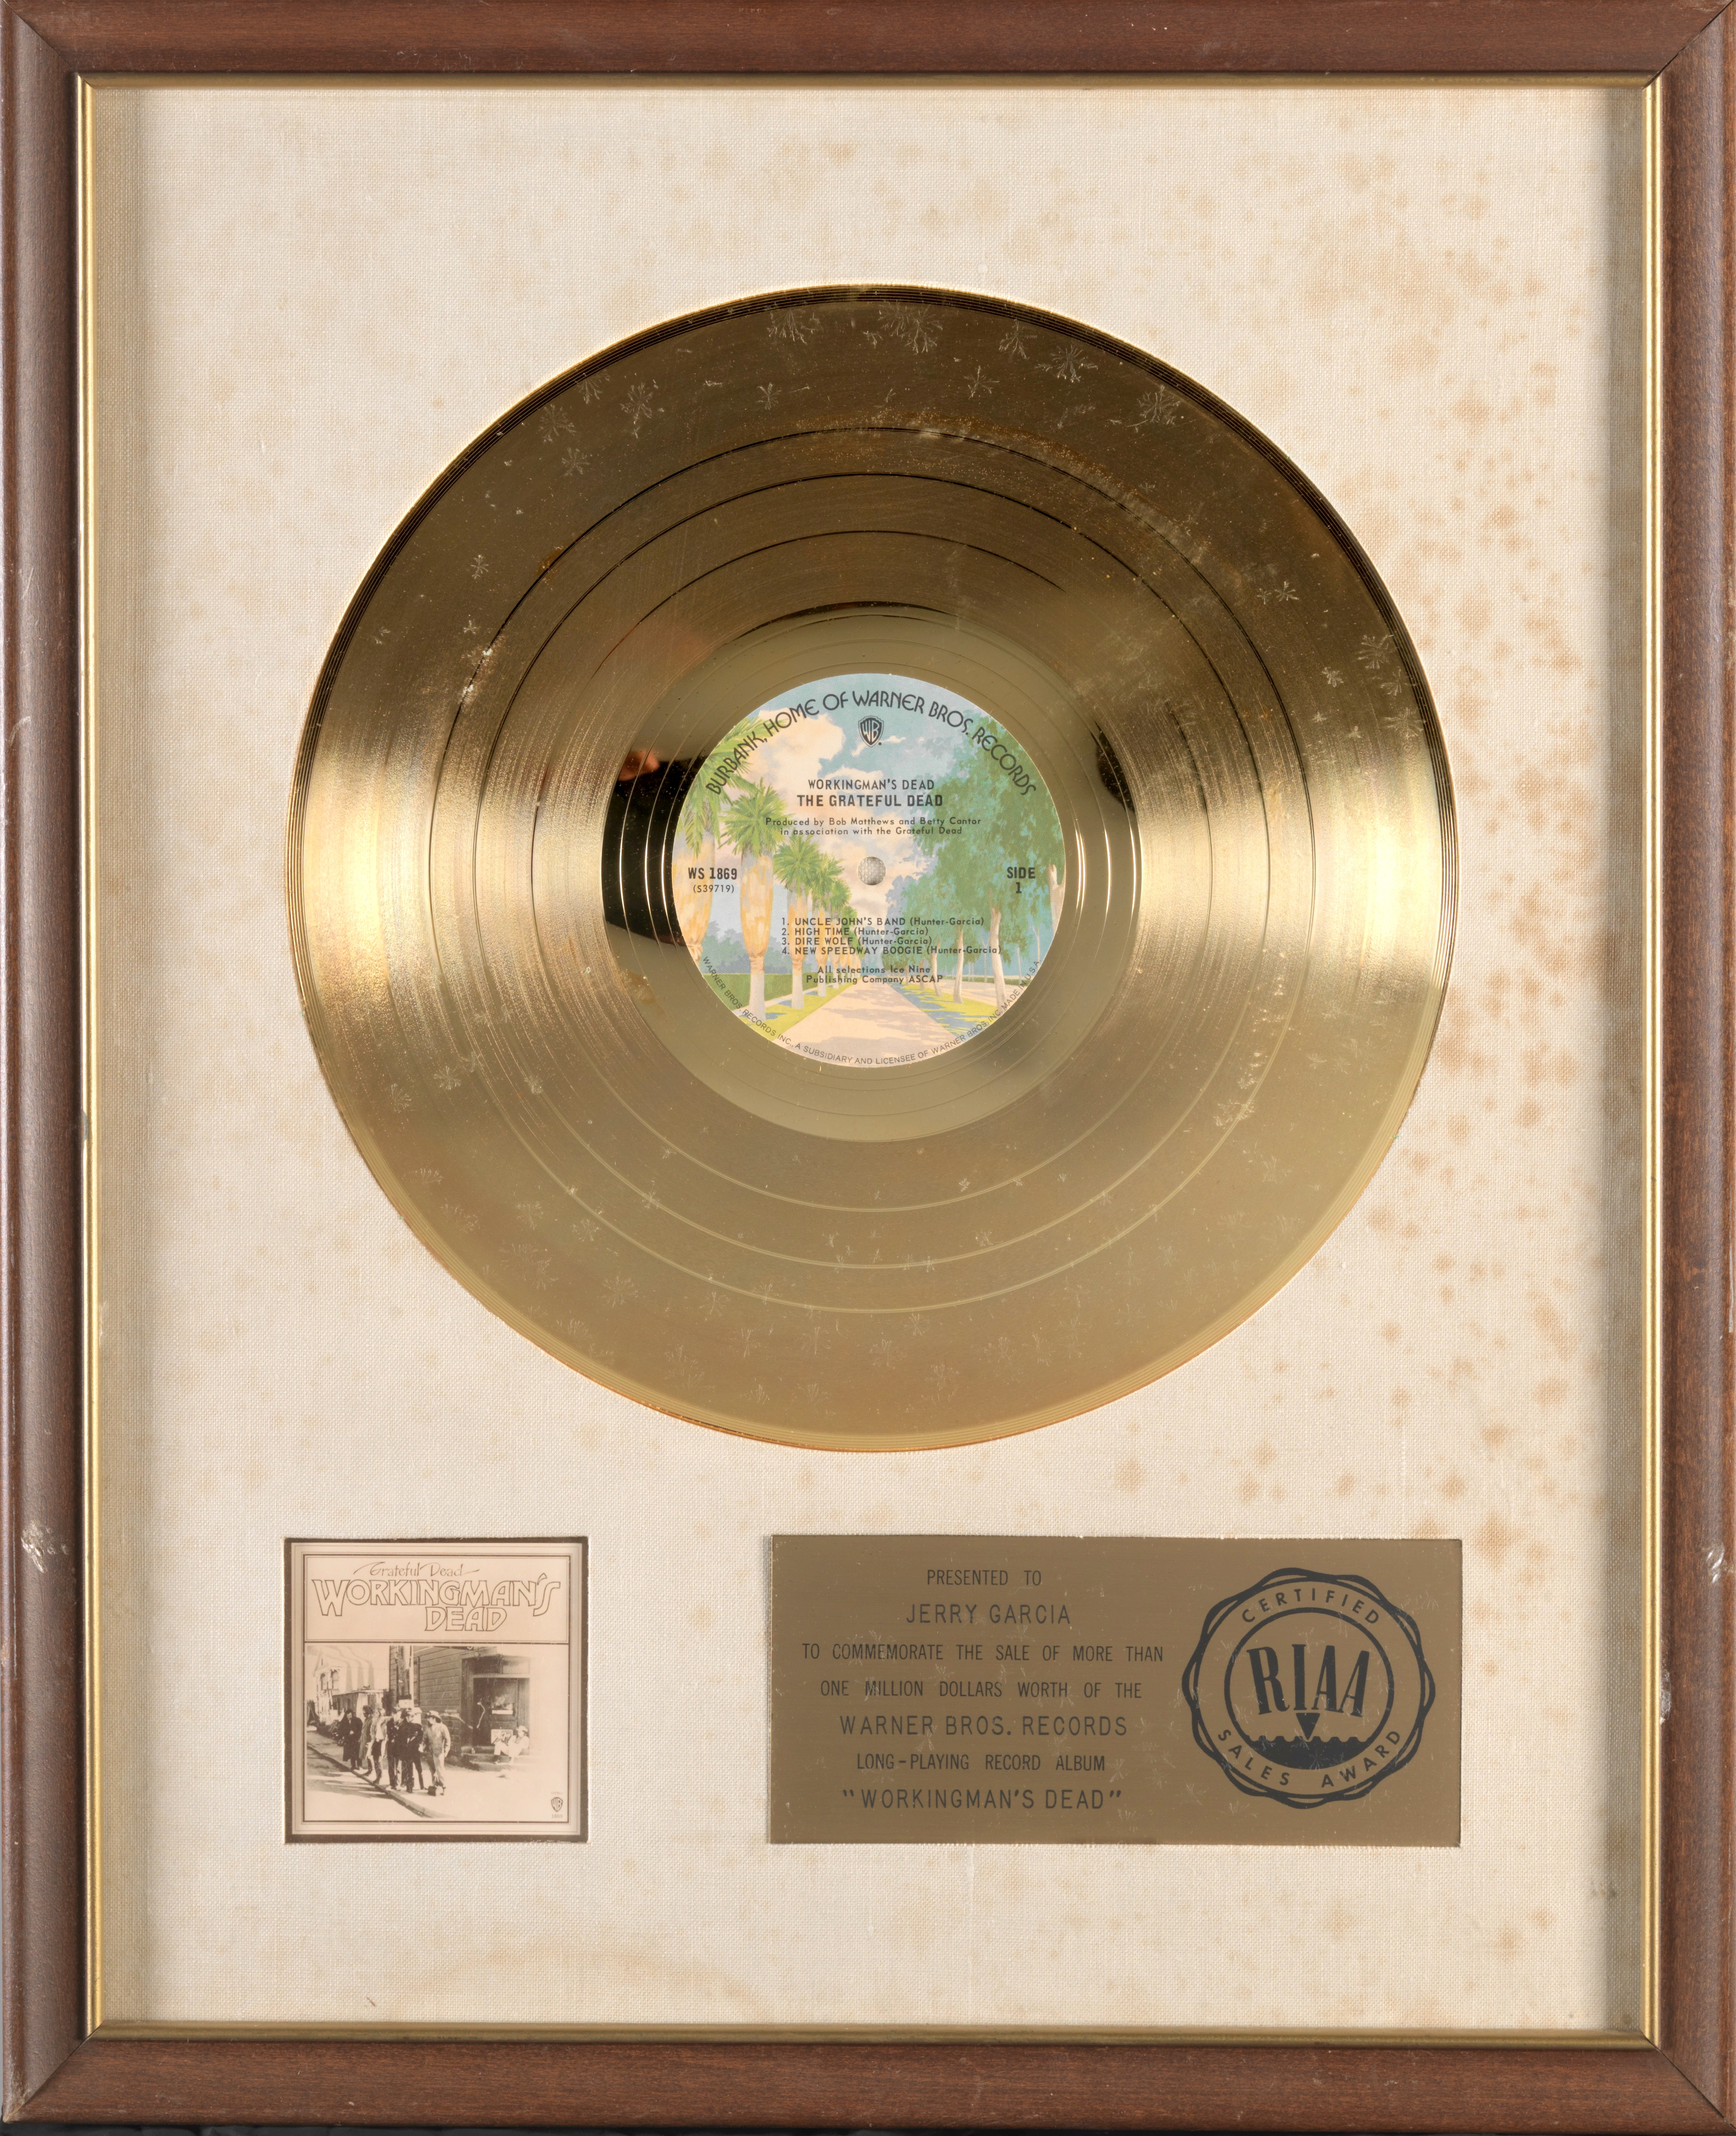 Lot 320 - A JERRY GARCIA 'GOLD' SALES AWARD FOR THE ALBUM WORKINGMAN'S DEAD 1974